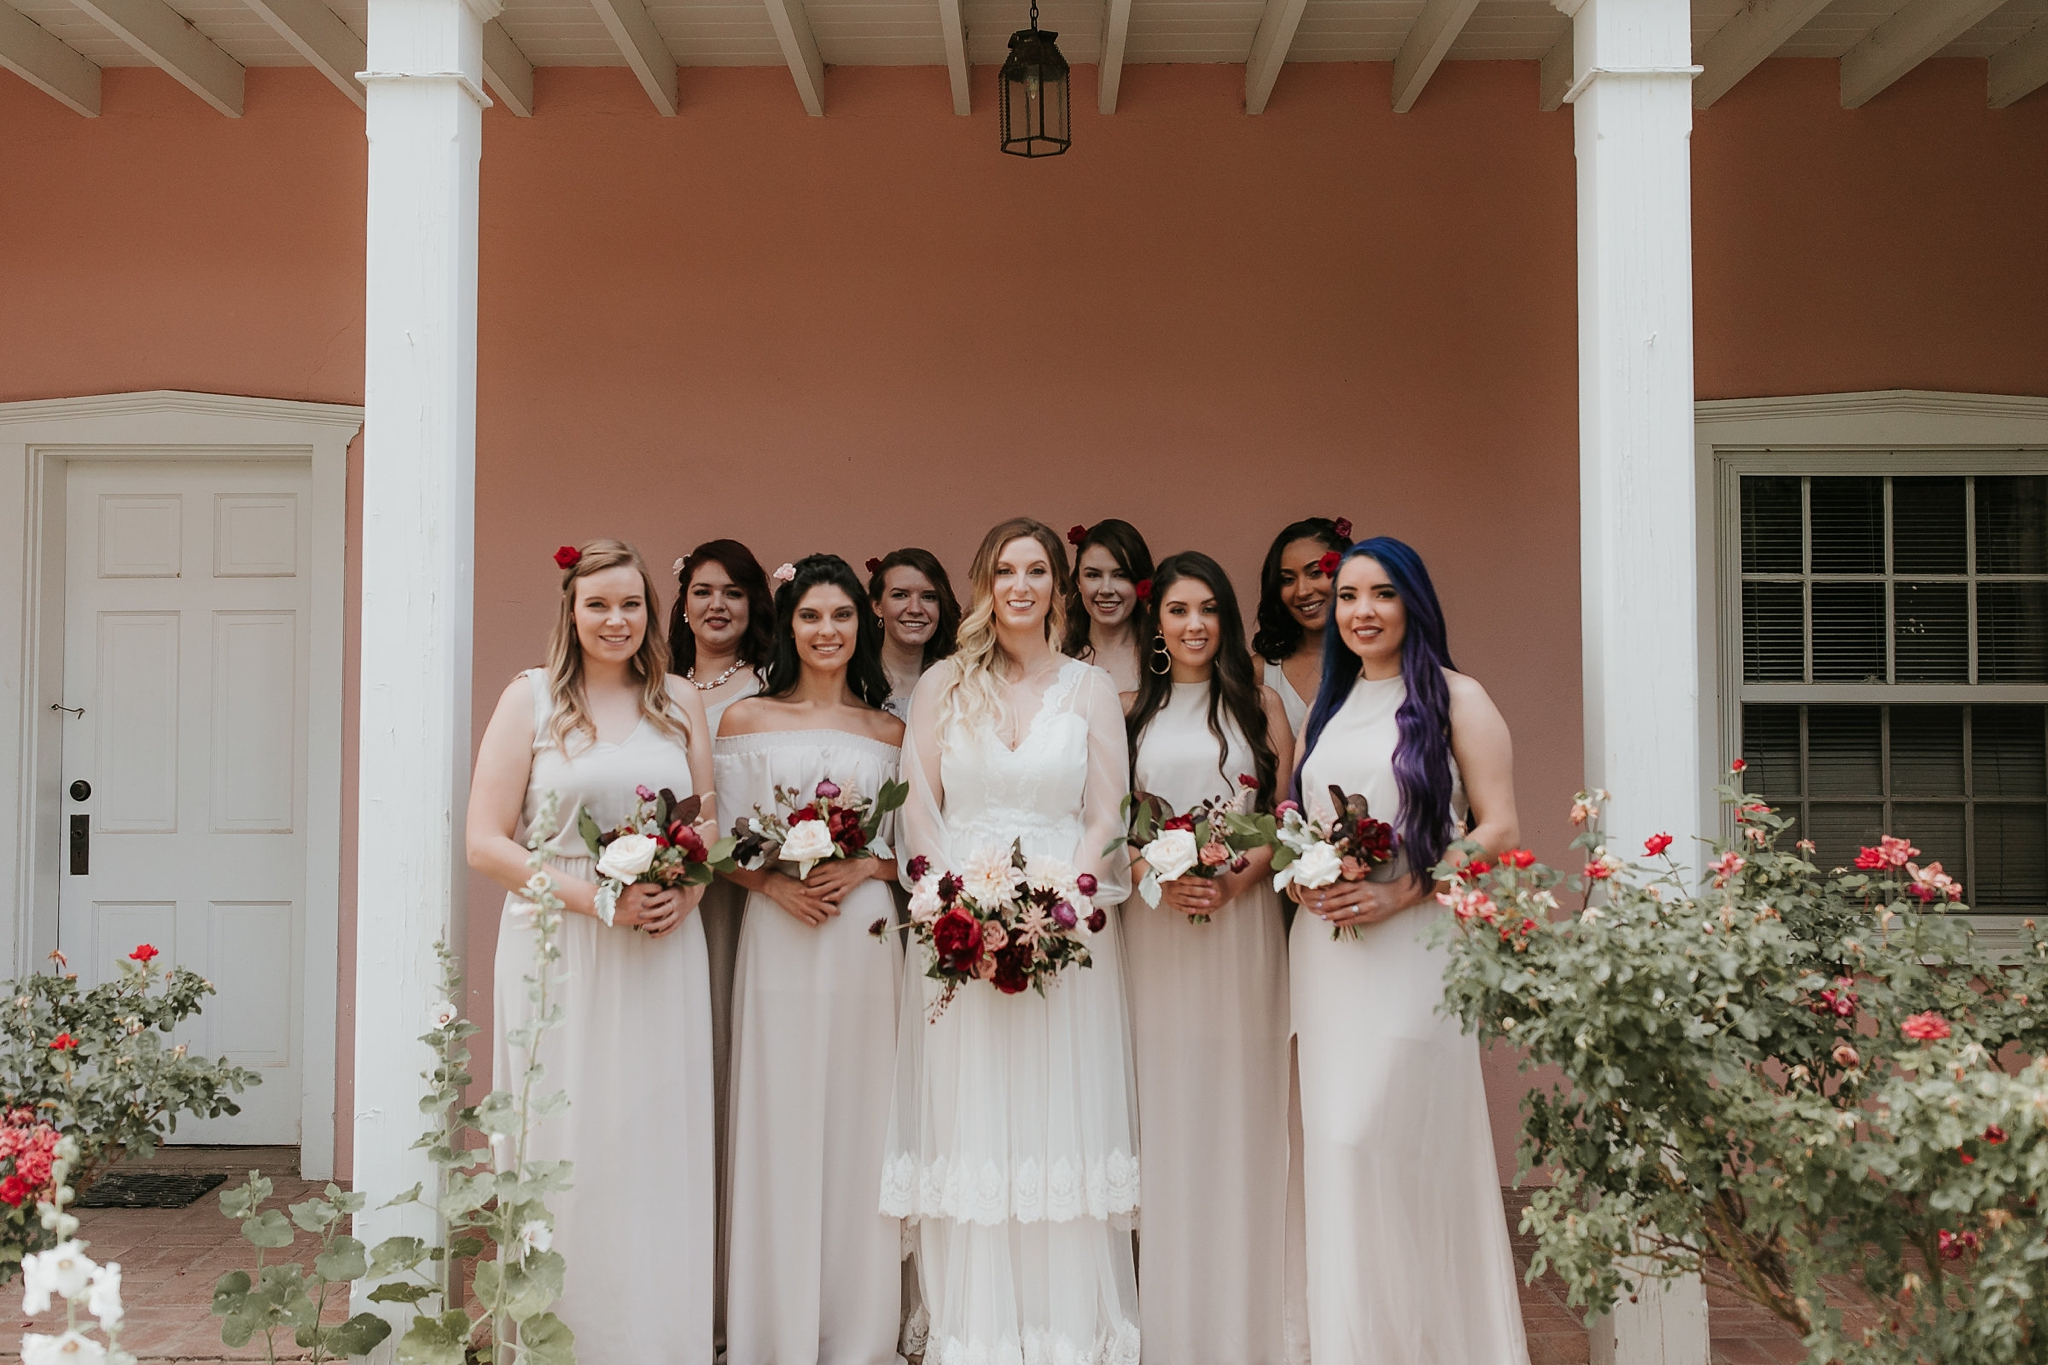 Alicia+lucia+photography+-+albuquerque+wedding+photographer+-+santa+fe+wedding+photography+-+new+mexico+wedding+photographer+-+new+mexico+wedding+-+new+mexico+wedding+-+colorado+wedding+-+bridesmaids+-+bridesmaid+style_0030.jpg